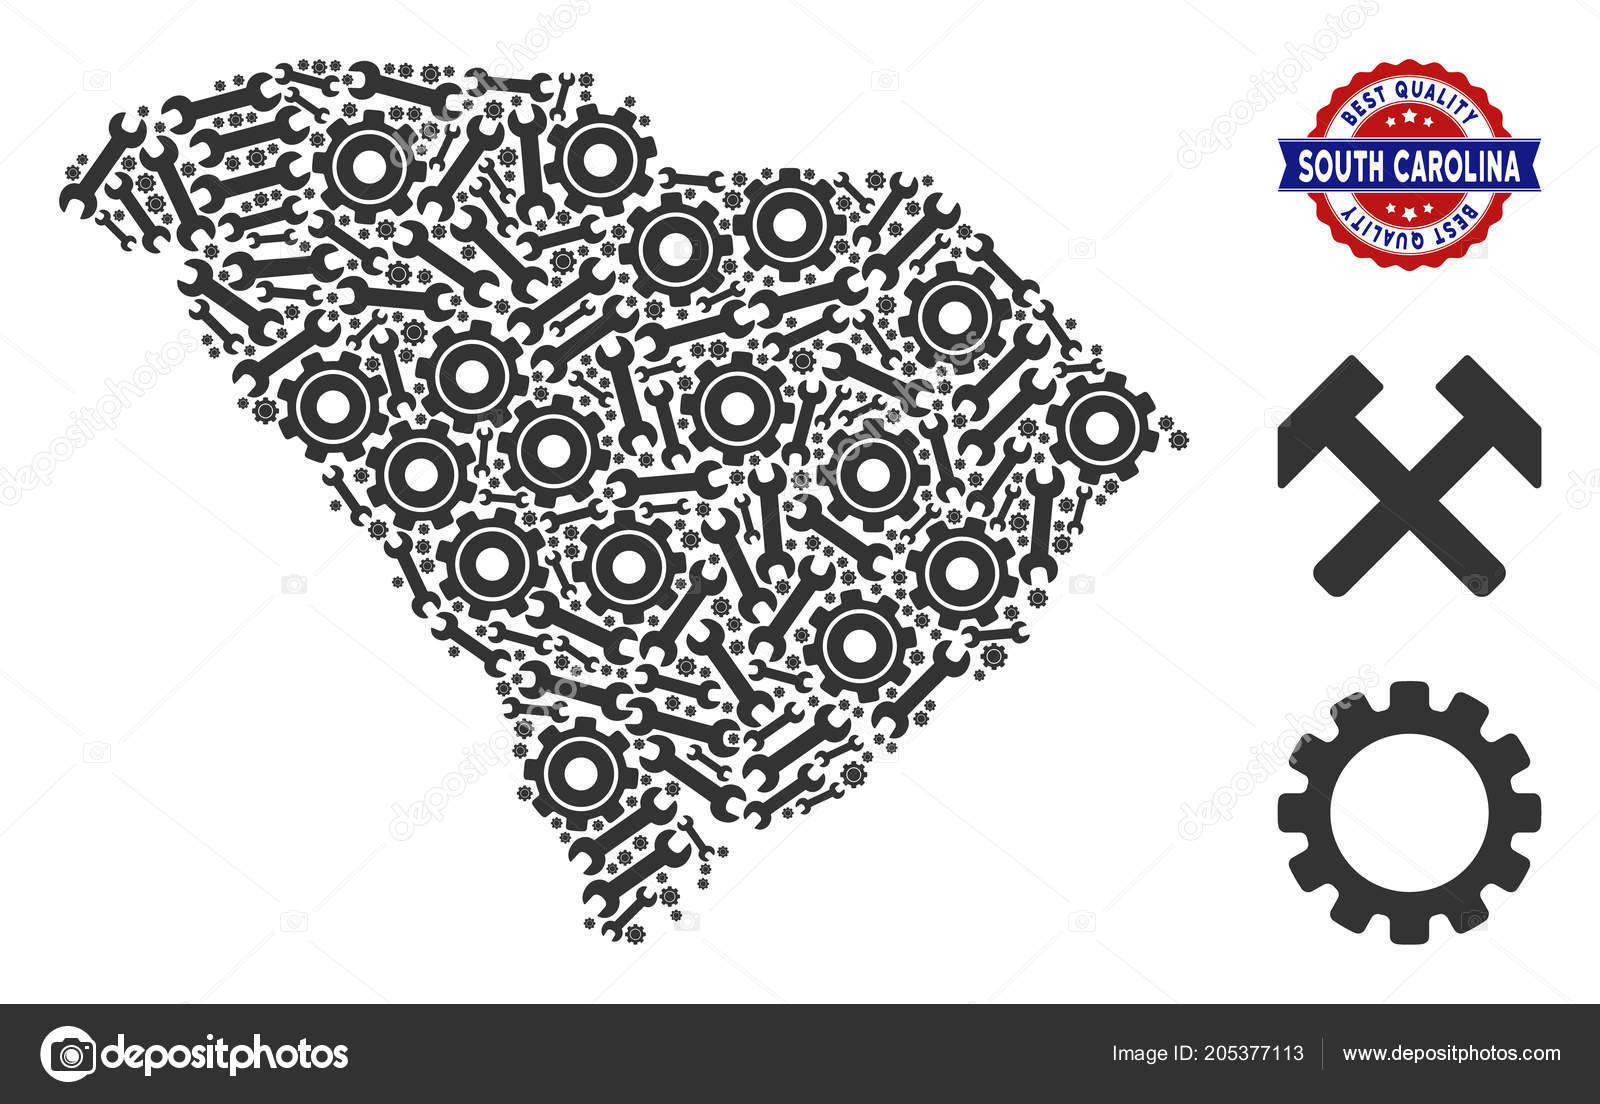 Mosaic South Carolina State Map of Service Tools — Stock Vector ...